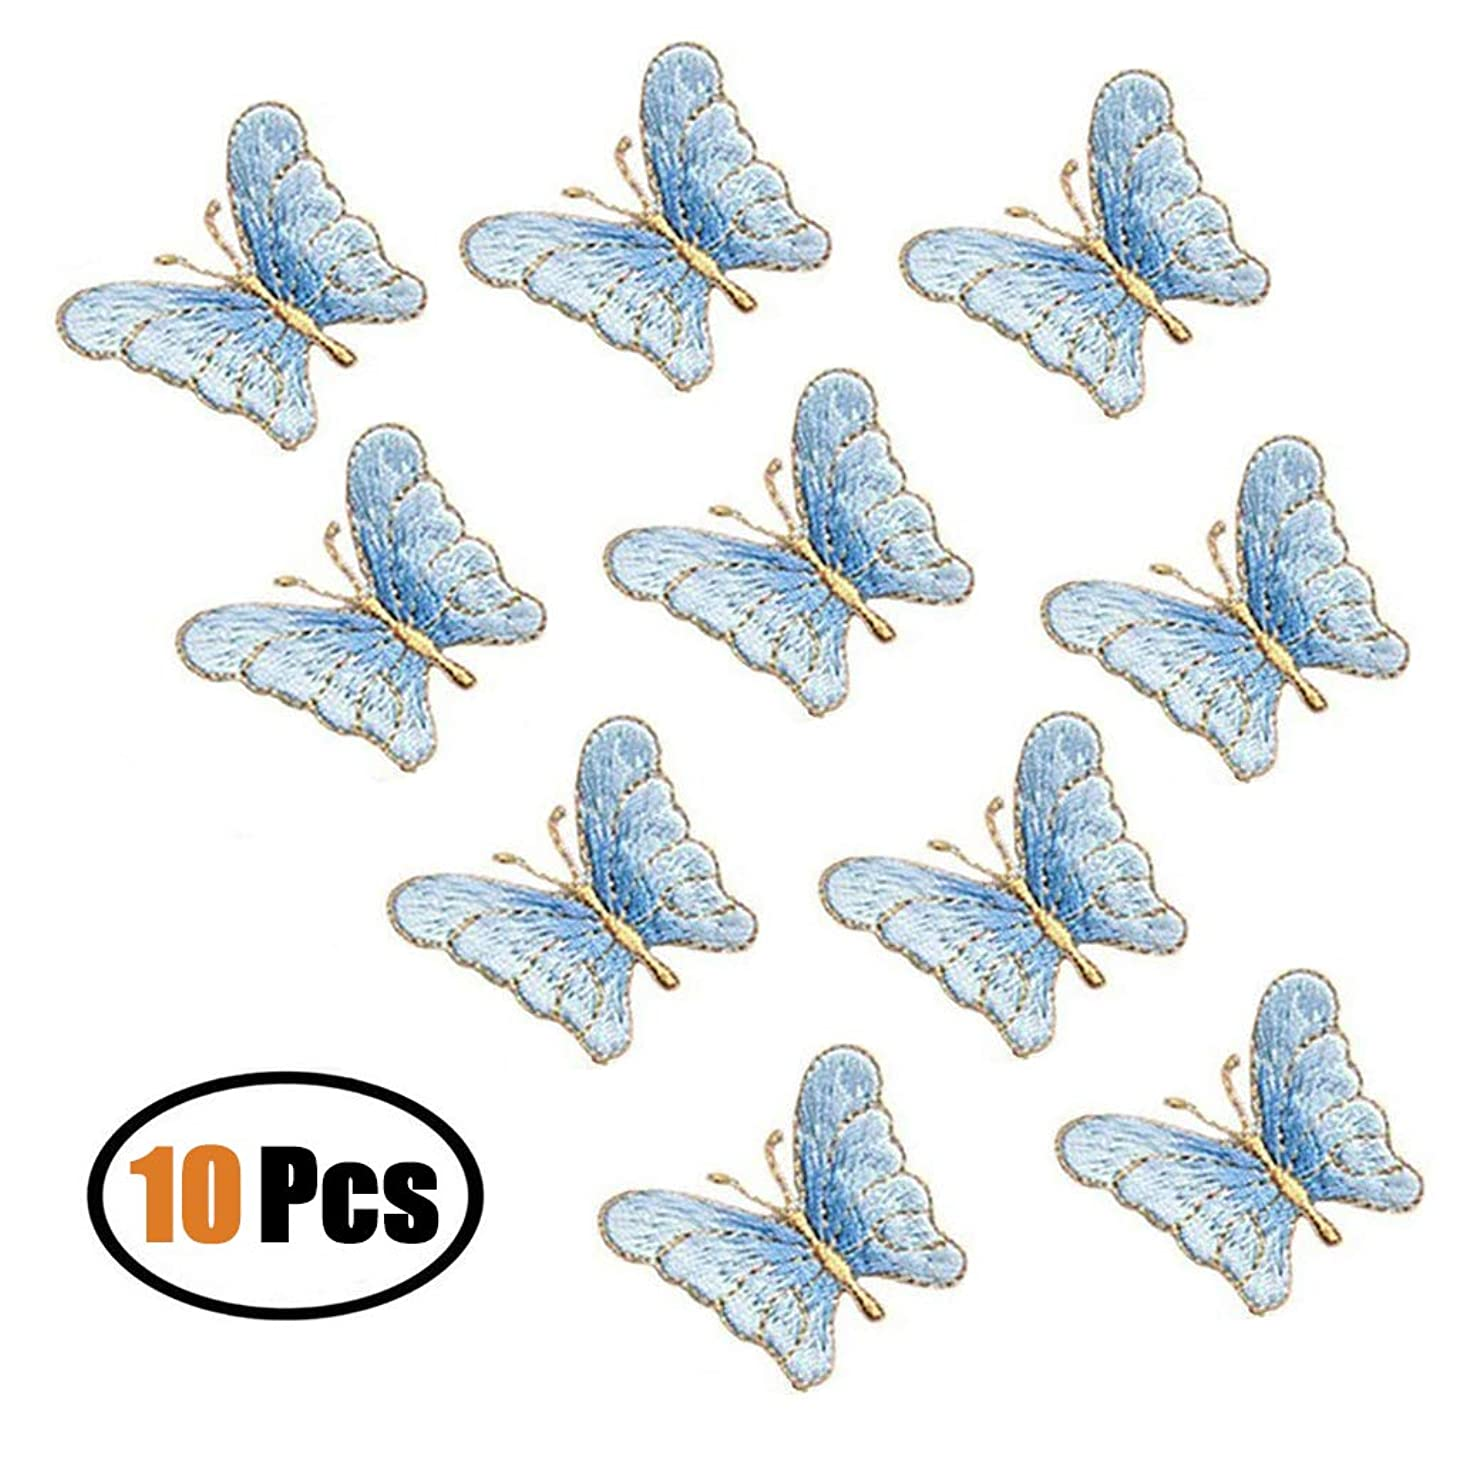 10 Pack Delicate Embroidered Patches, Butterfly Embroidery Patches, Iron On Patches, Sew On Applique Patch, Custom Backpack Patches for Boys, Girls, Kids, Super Cute! (Blue)